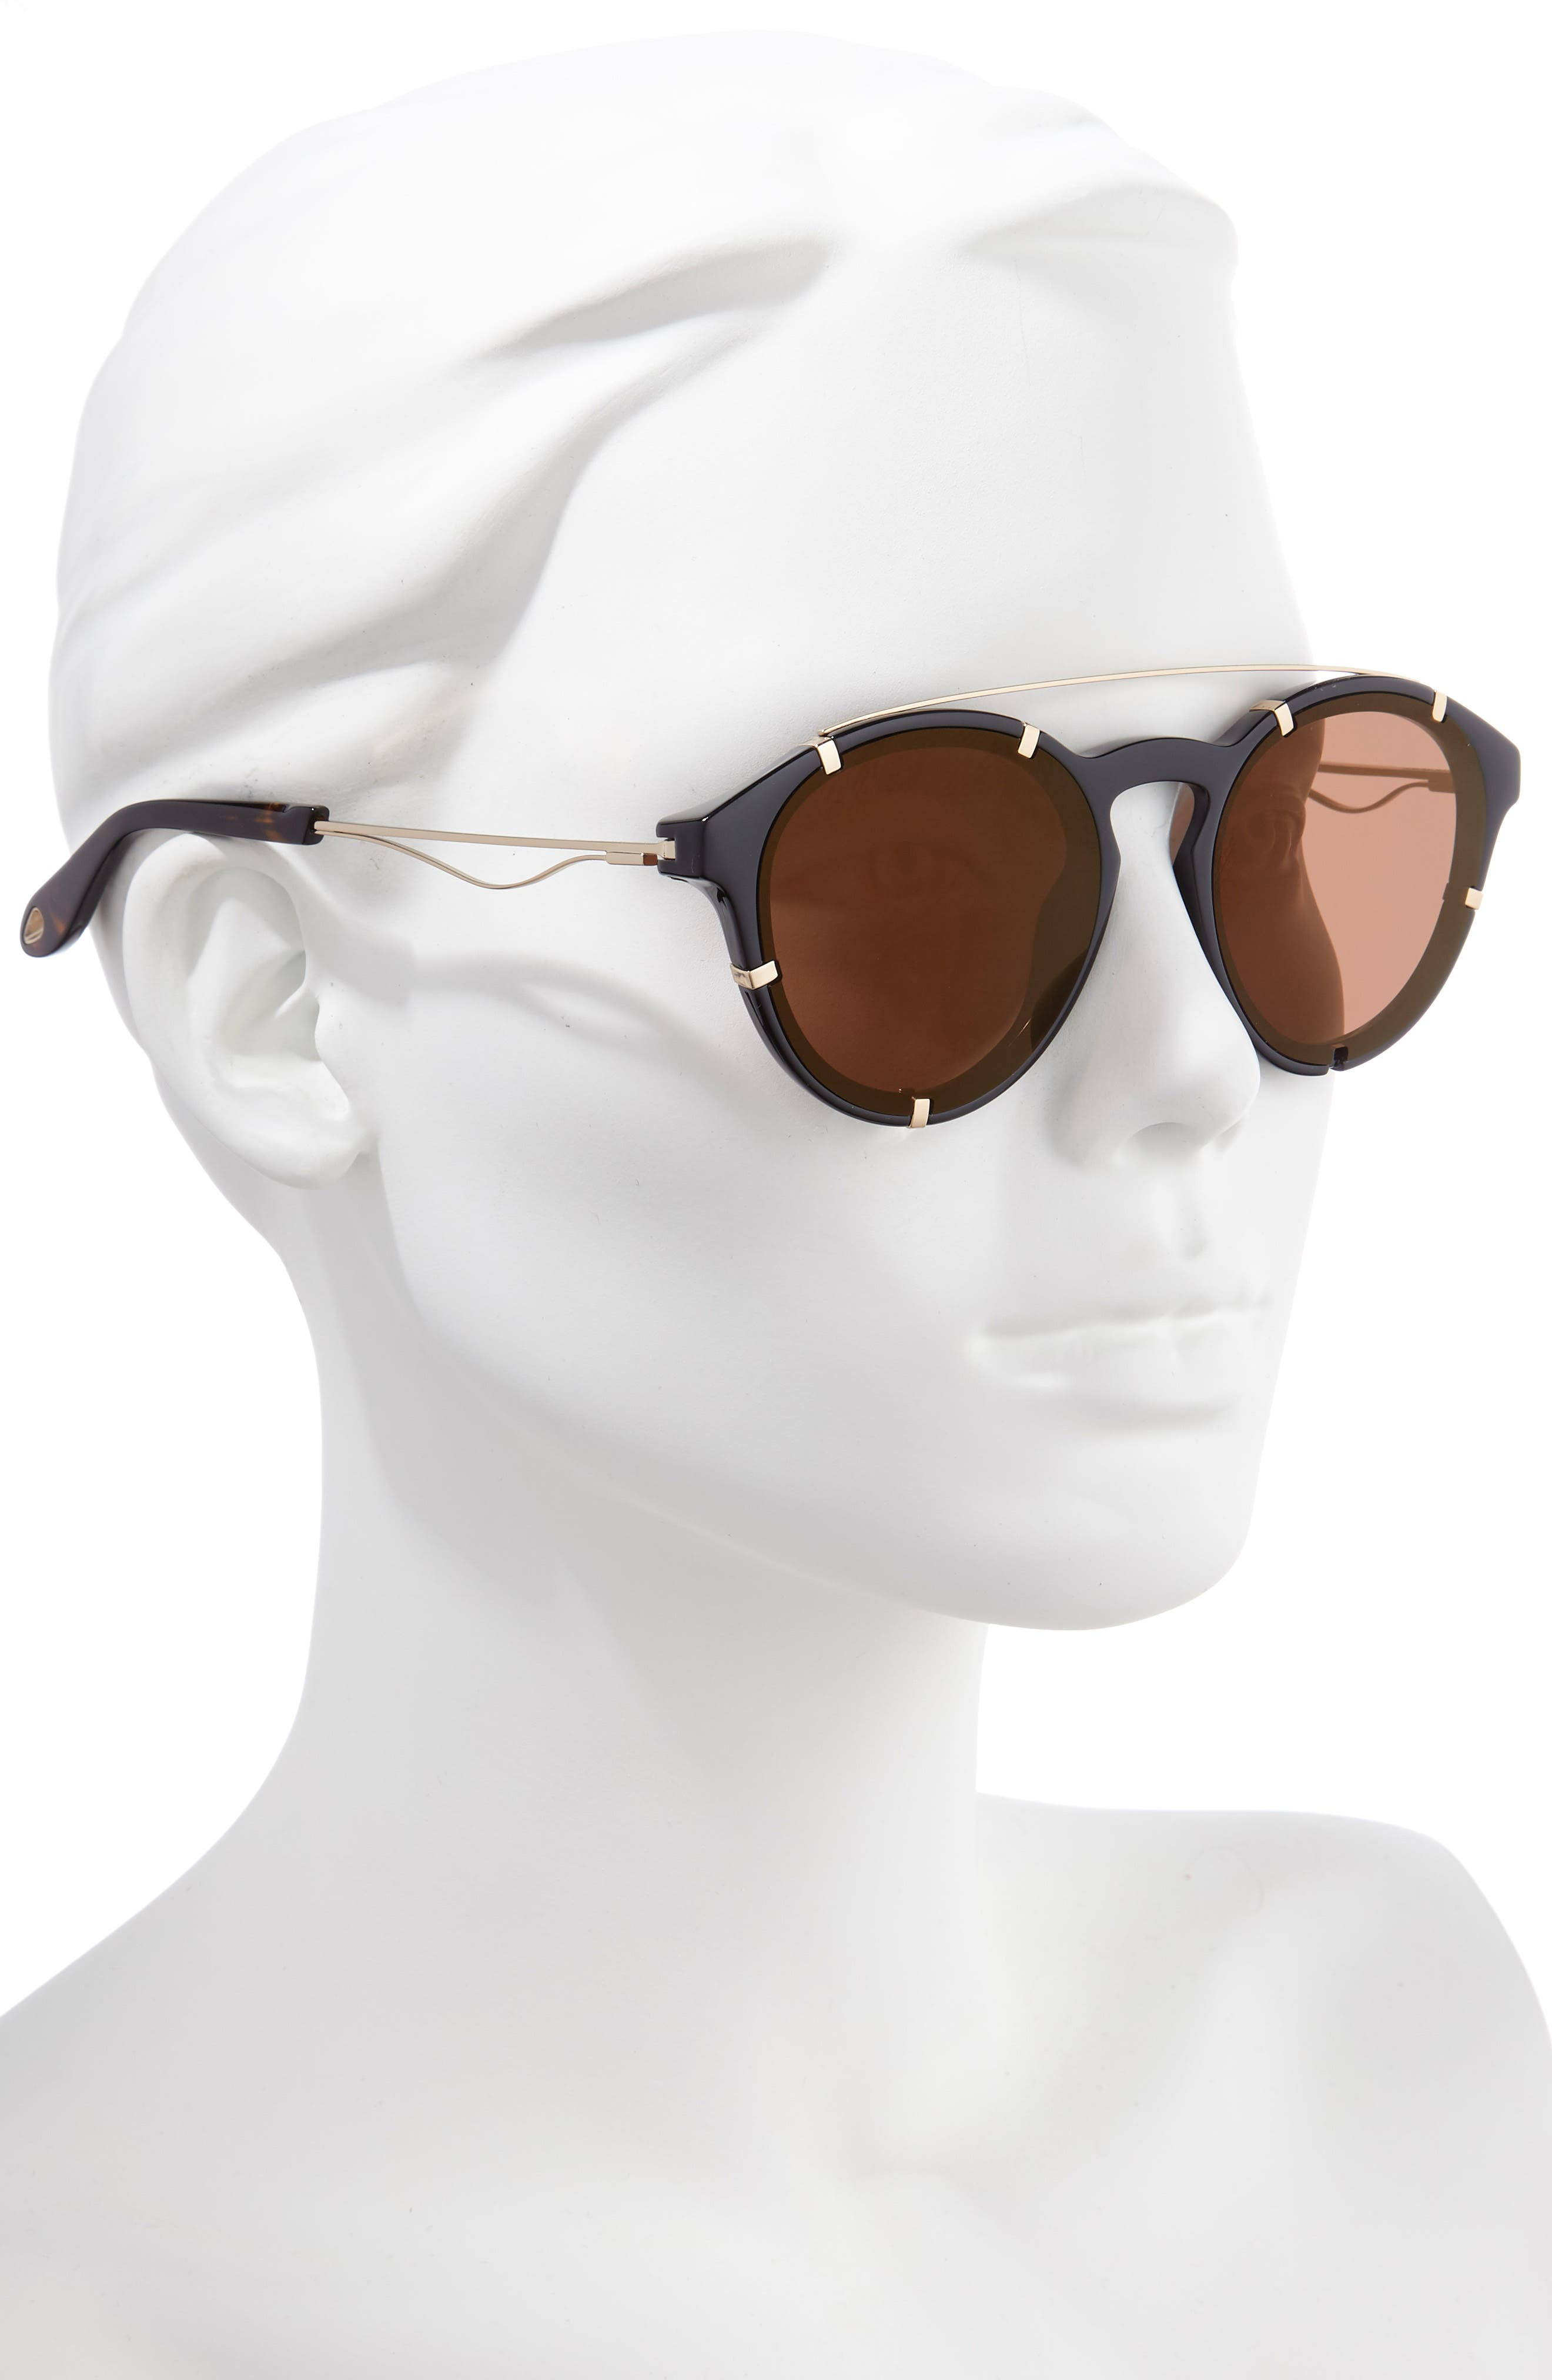 49afa96ecec4d Givenchy Women s Sunglasses and Accessories